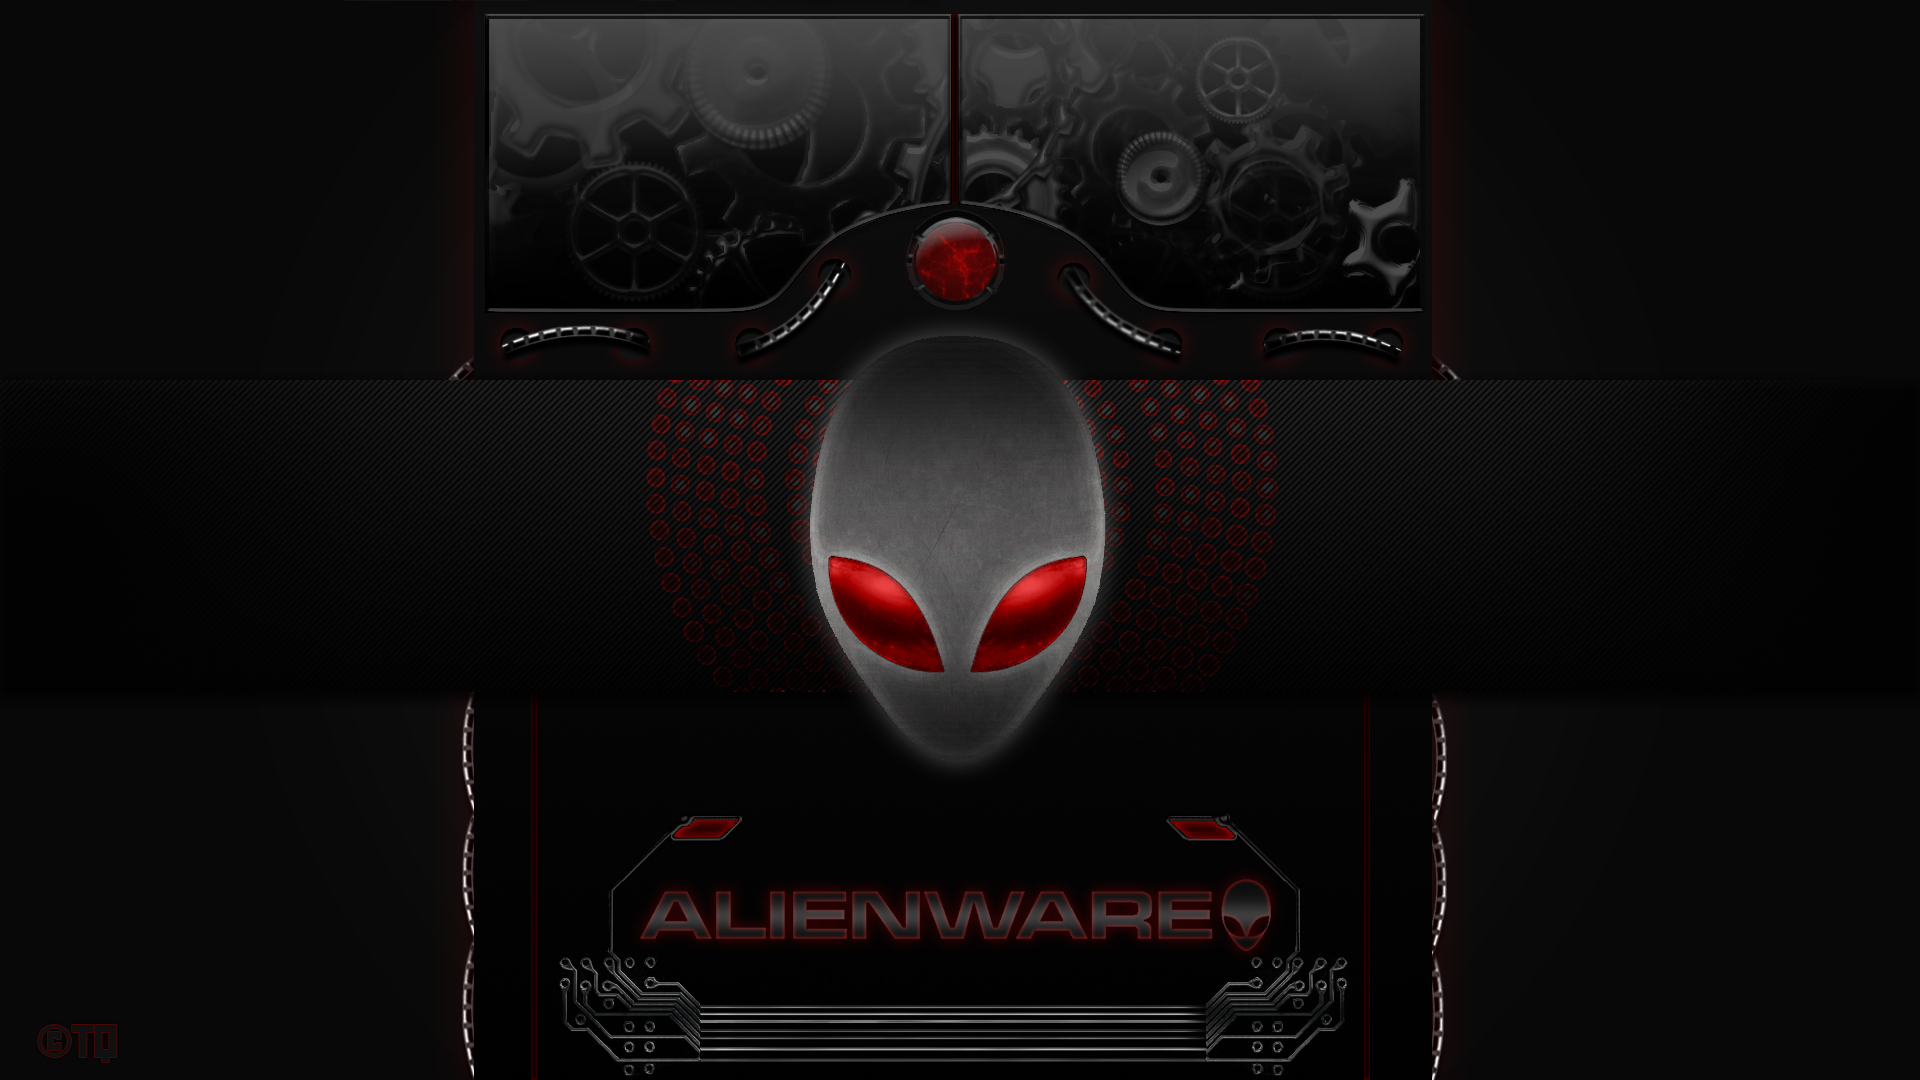 Alienware Wallpaper By TerraroQ